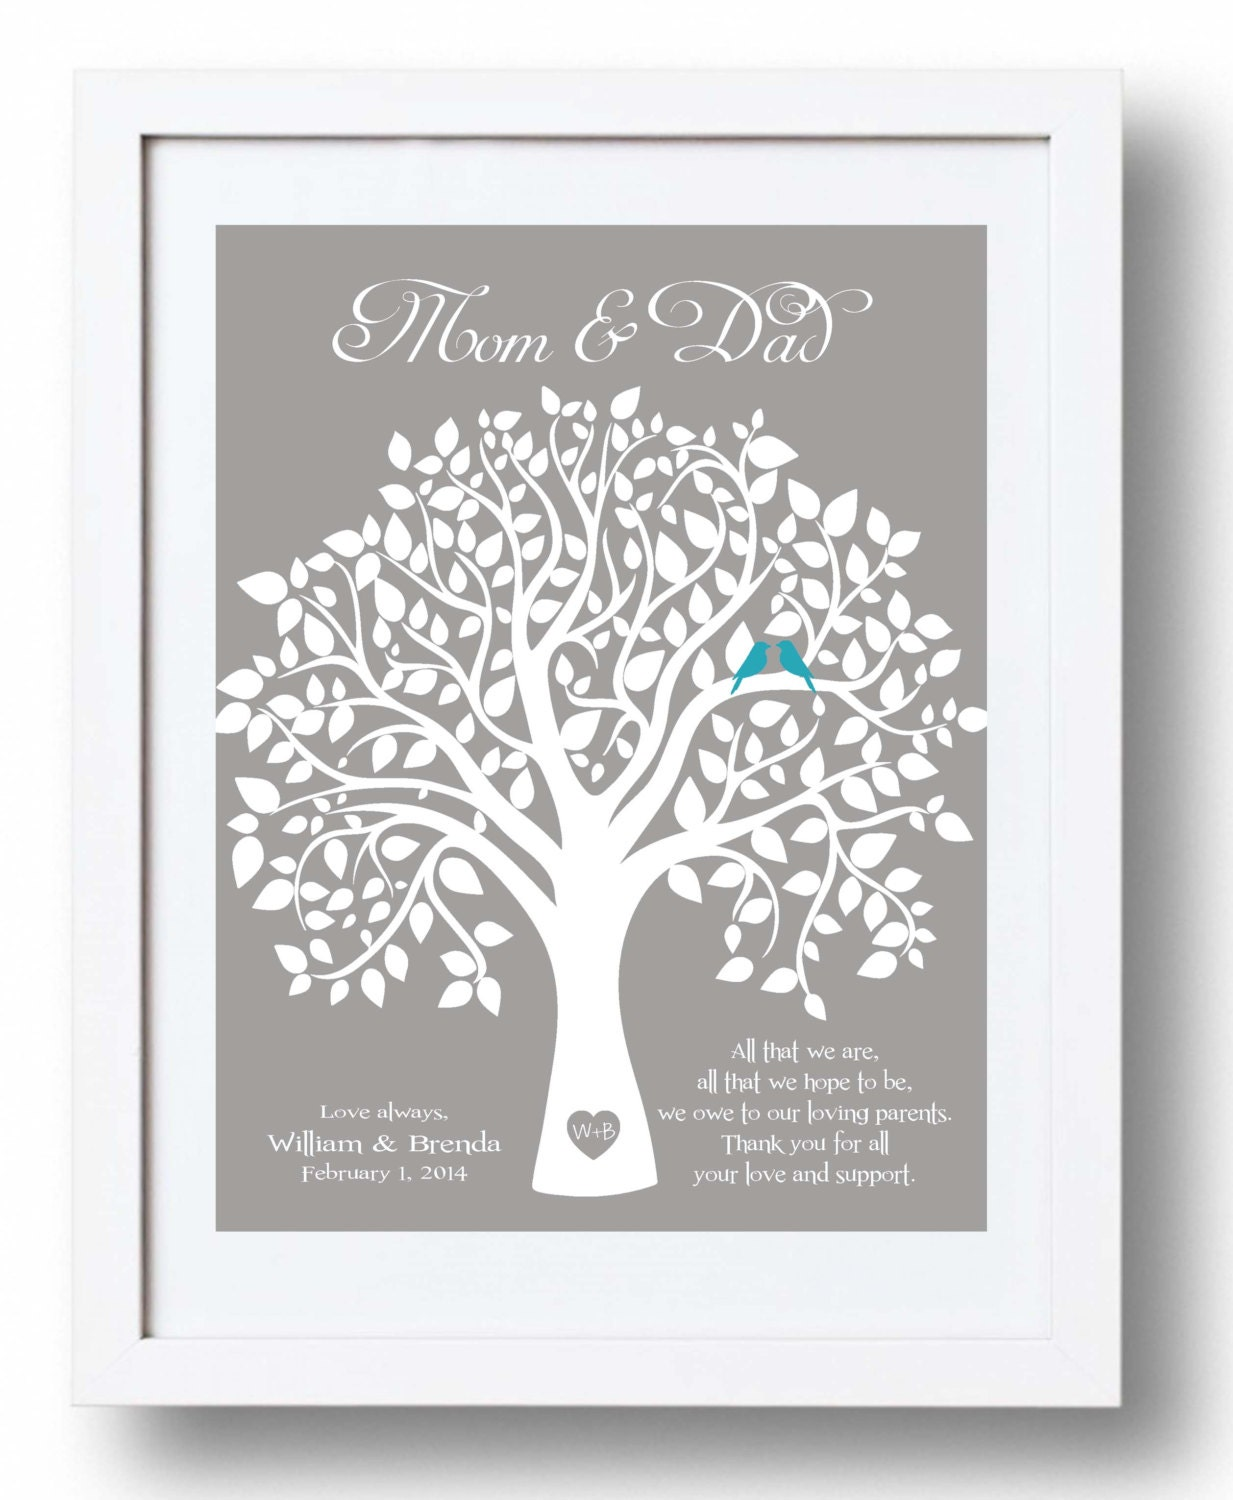 Personalised Wedding Gifts For Parents : Custom Wedding Gift for Parents from Bride and Groom Thank